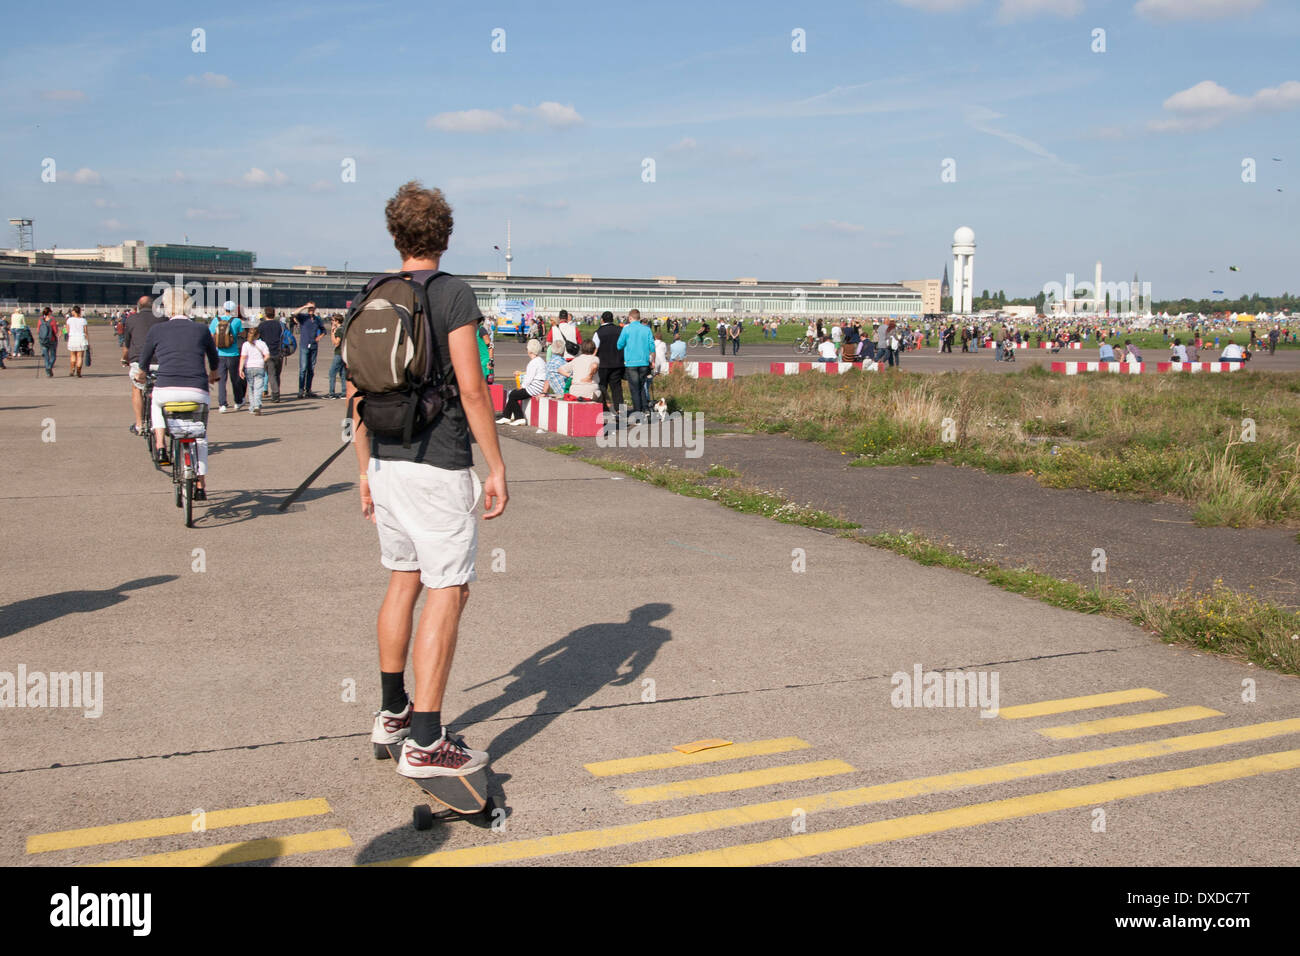 Former airport area Tempelhof in Berlin, Germany. - Stock Image